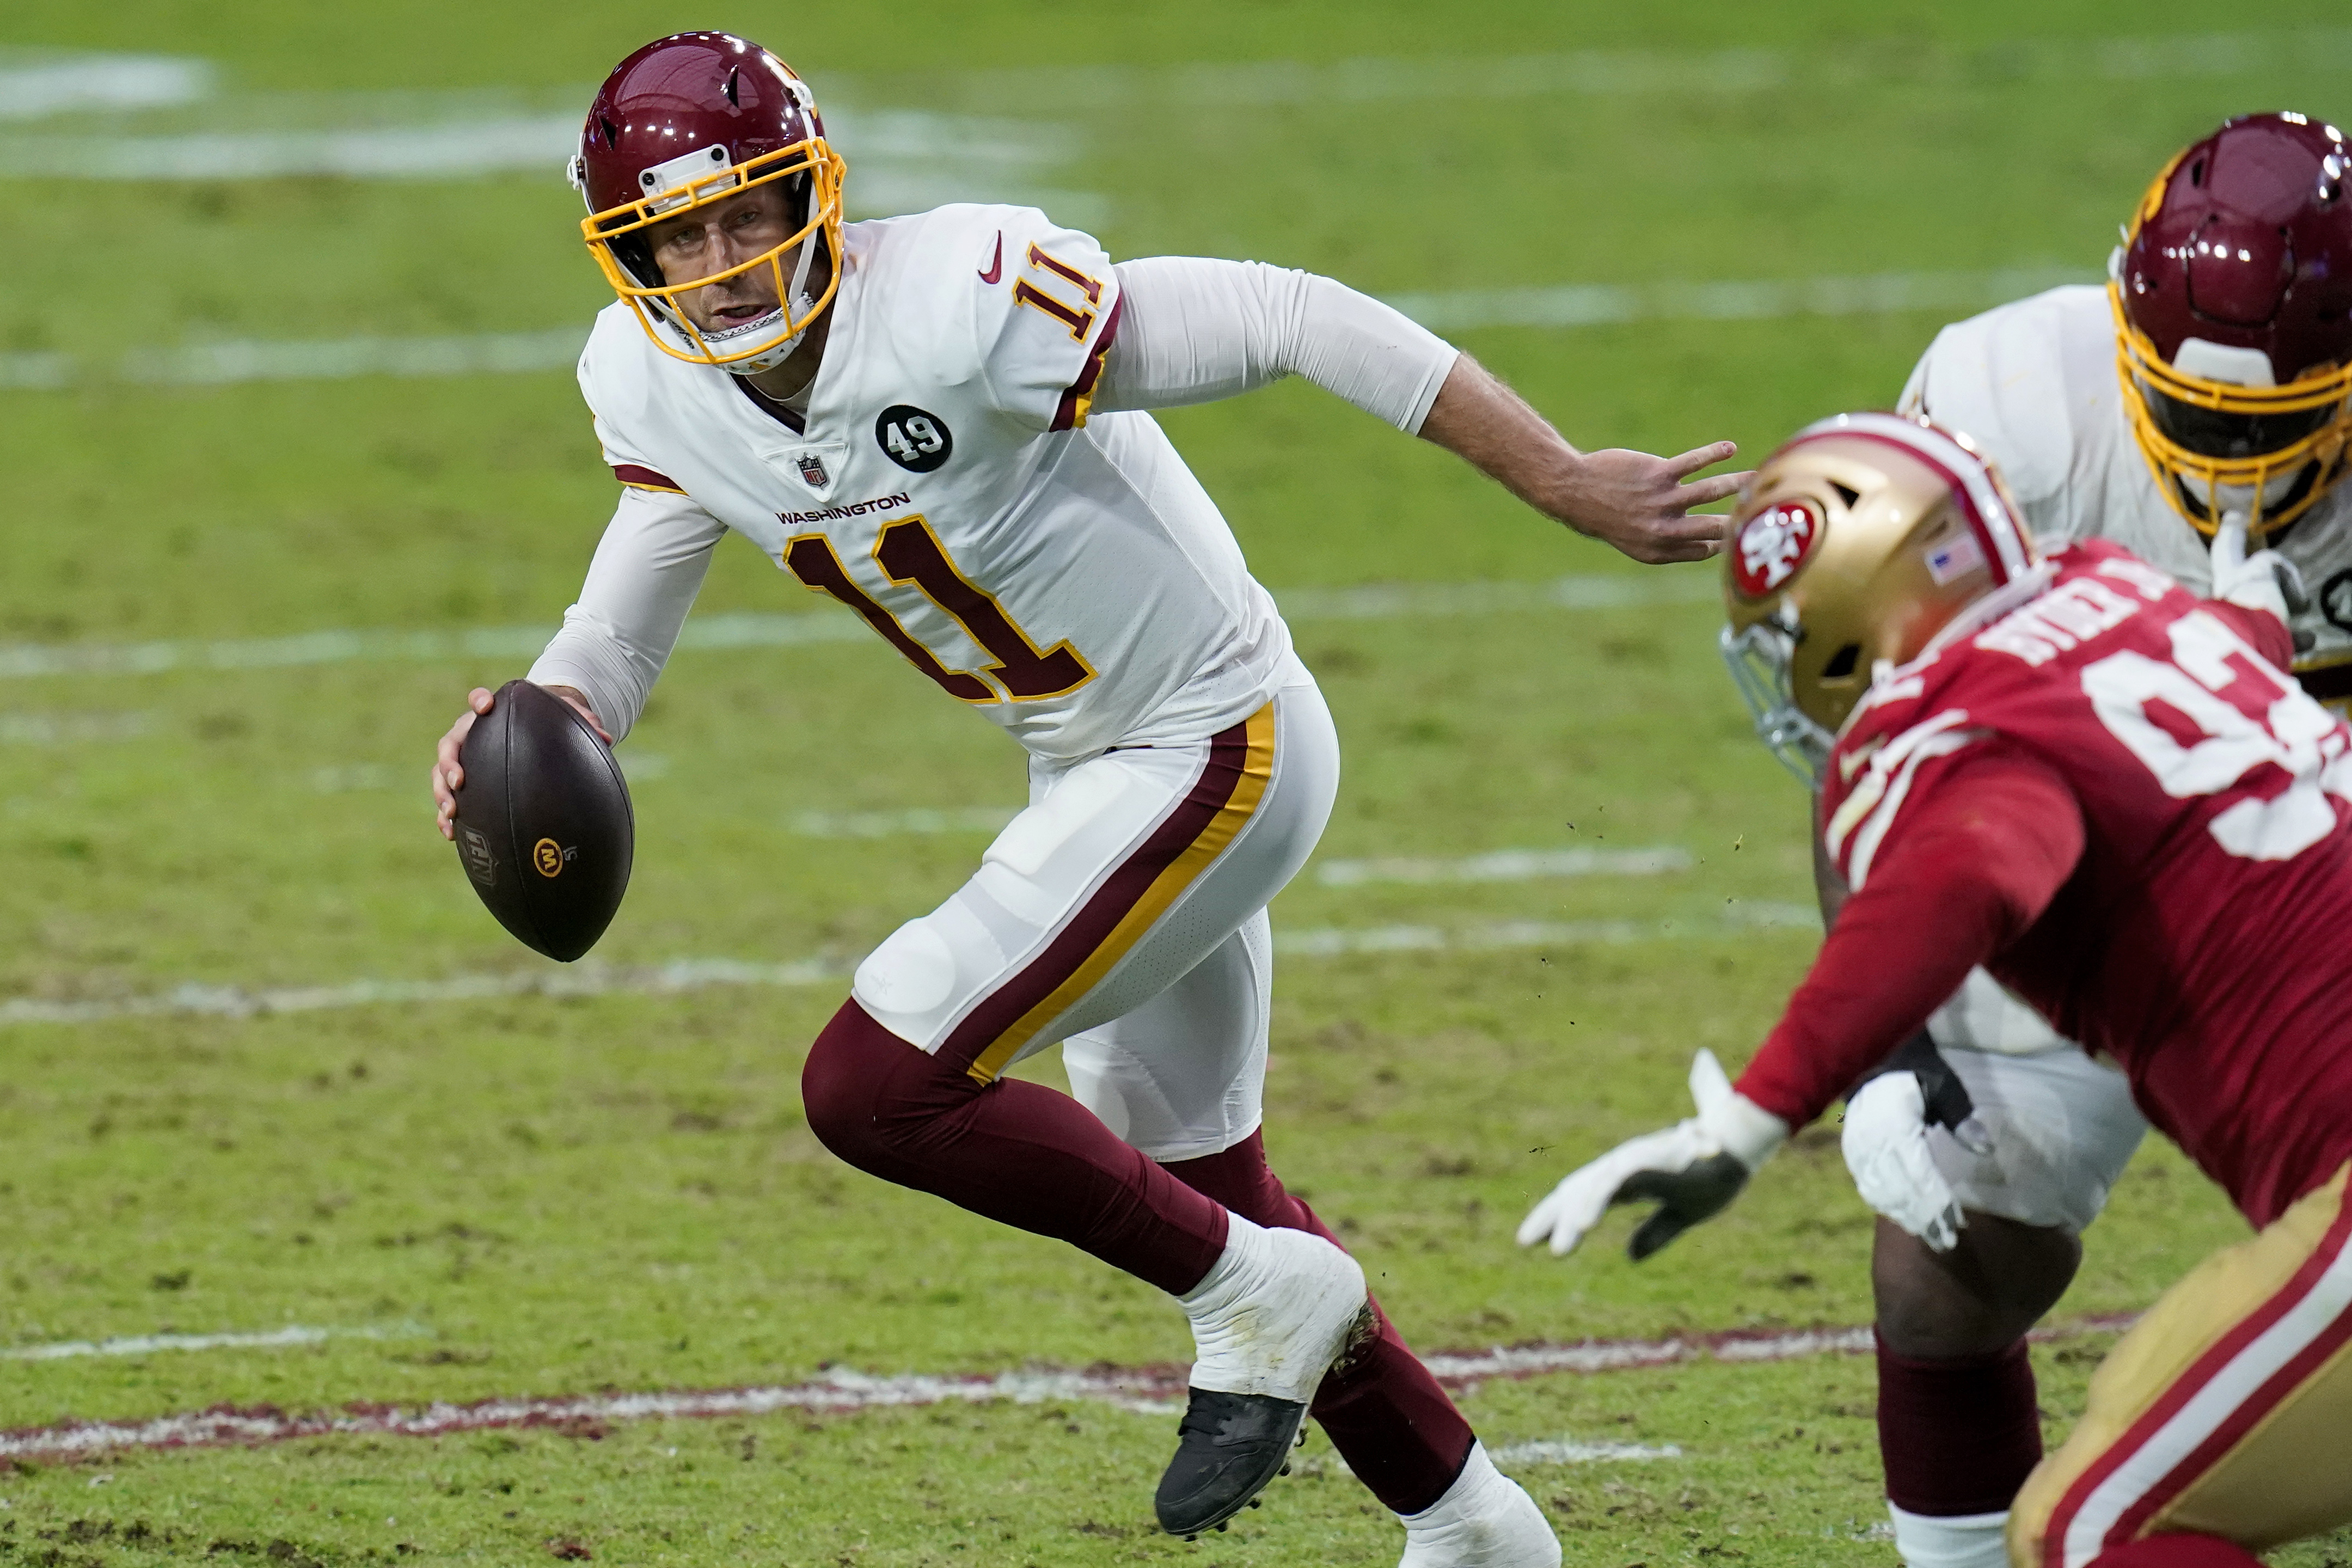 Nfl Alex Smith Leaves Wft Game Vs 49ers With Leg Inuury